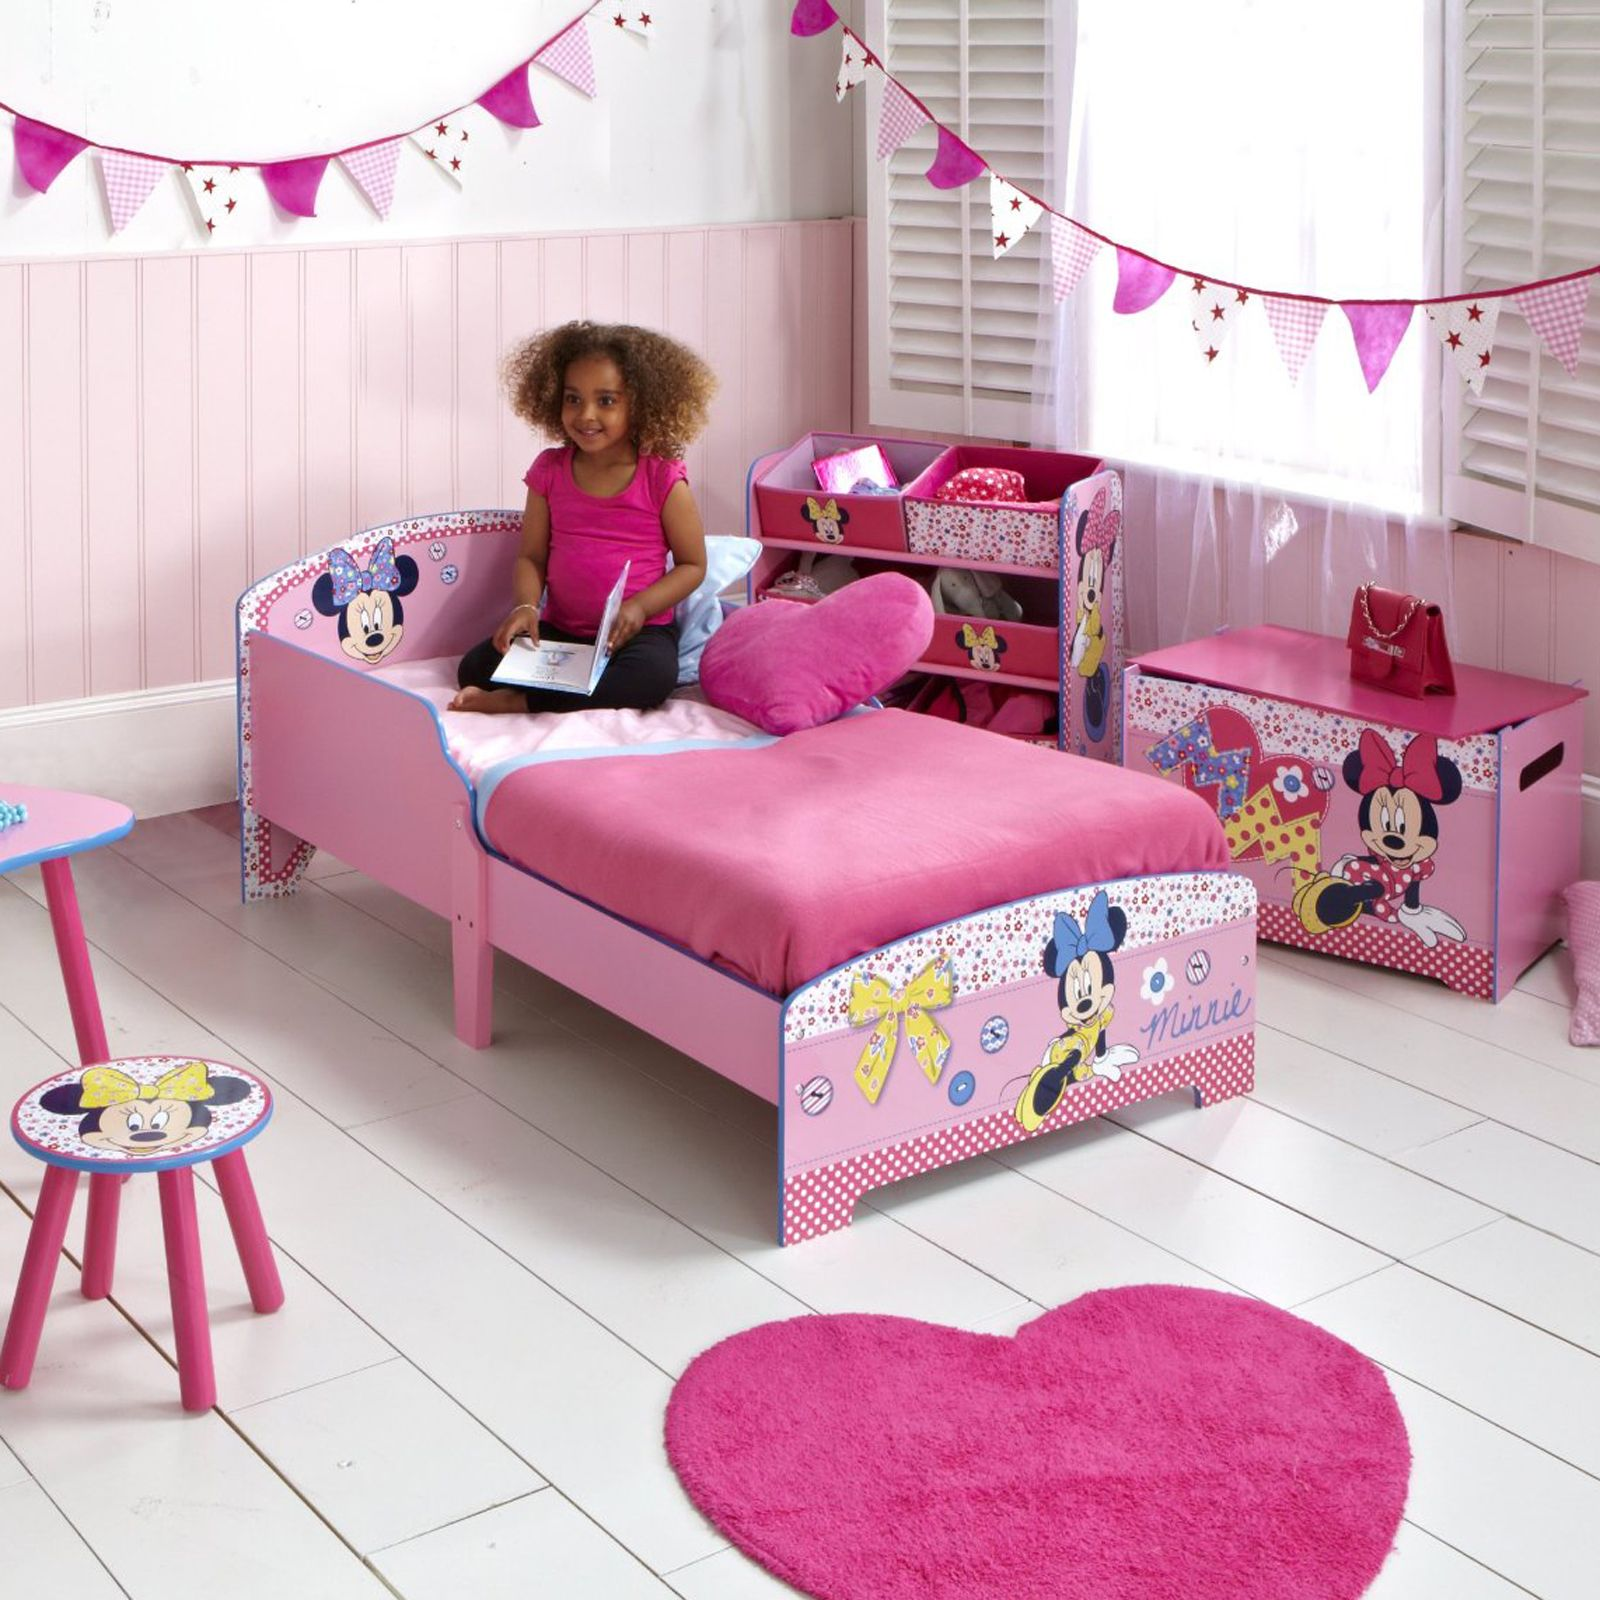 minnie mouse mdf kleinkind bett neu offiziell kinder m bel. Black Bedroom Furniture Sets. Home Design Ideas